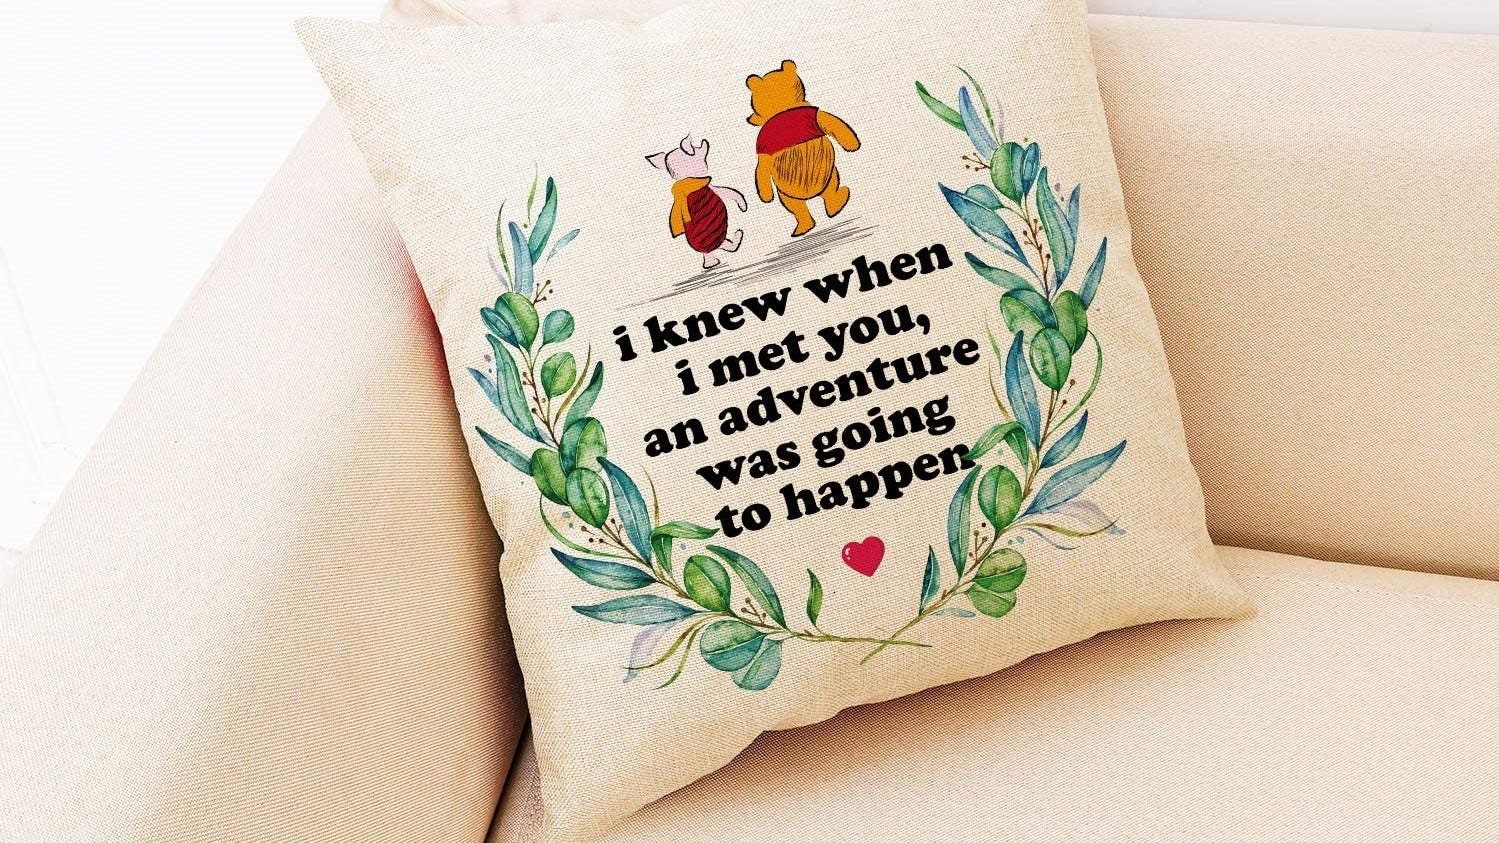 Winnie the Pooh and Piglet pillow on a couch.